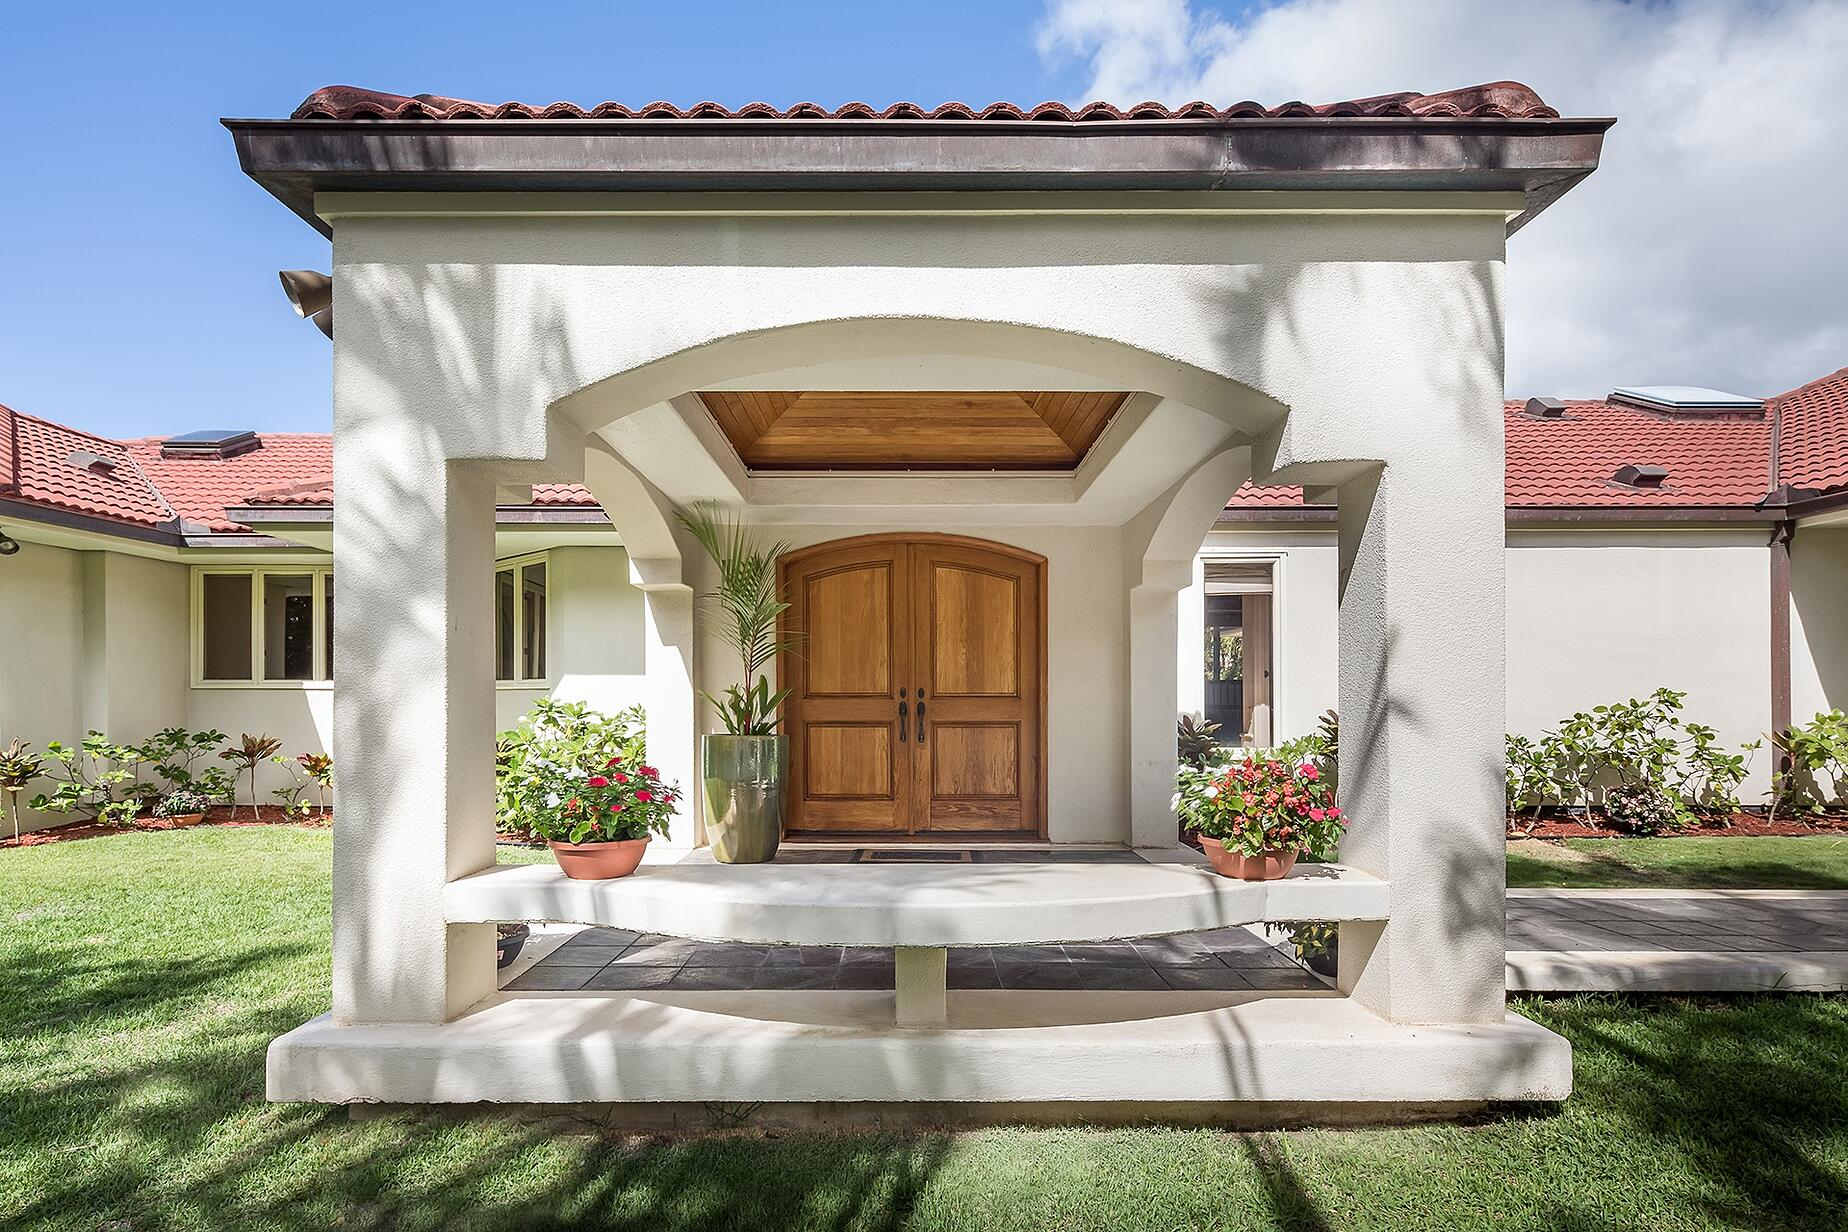 This impressive patio enclosure frames the main entrance and welcomes visitors into the home. Photograph: Mark Singer Photography